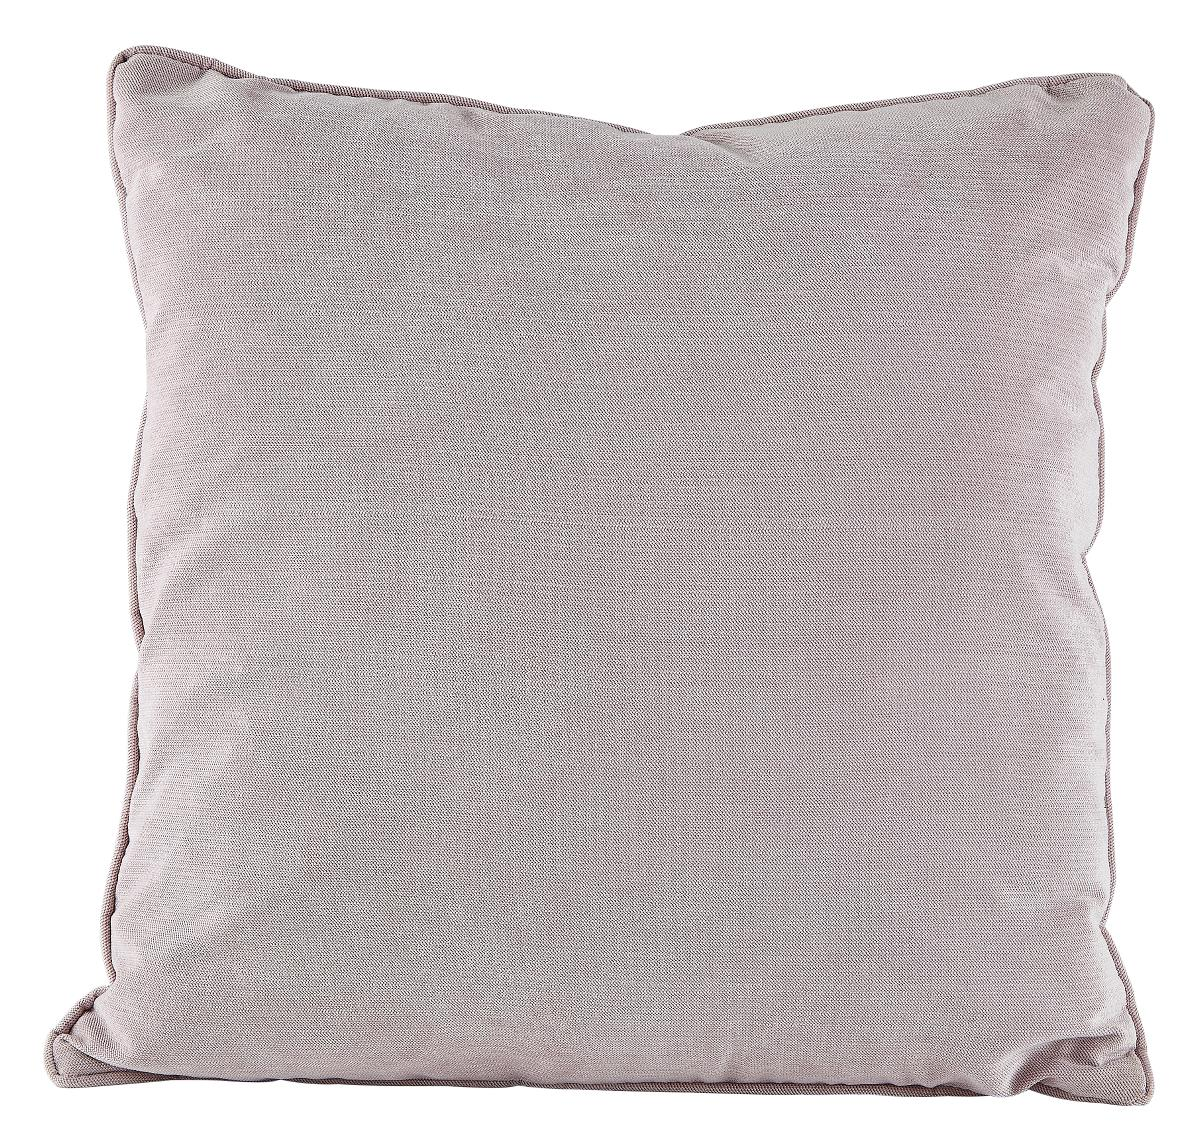 Image of   Villa Collection Pude 100% polyester 400 g Rose L 45 cm B 45 cm